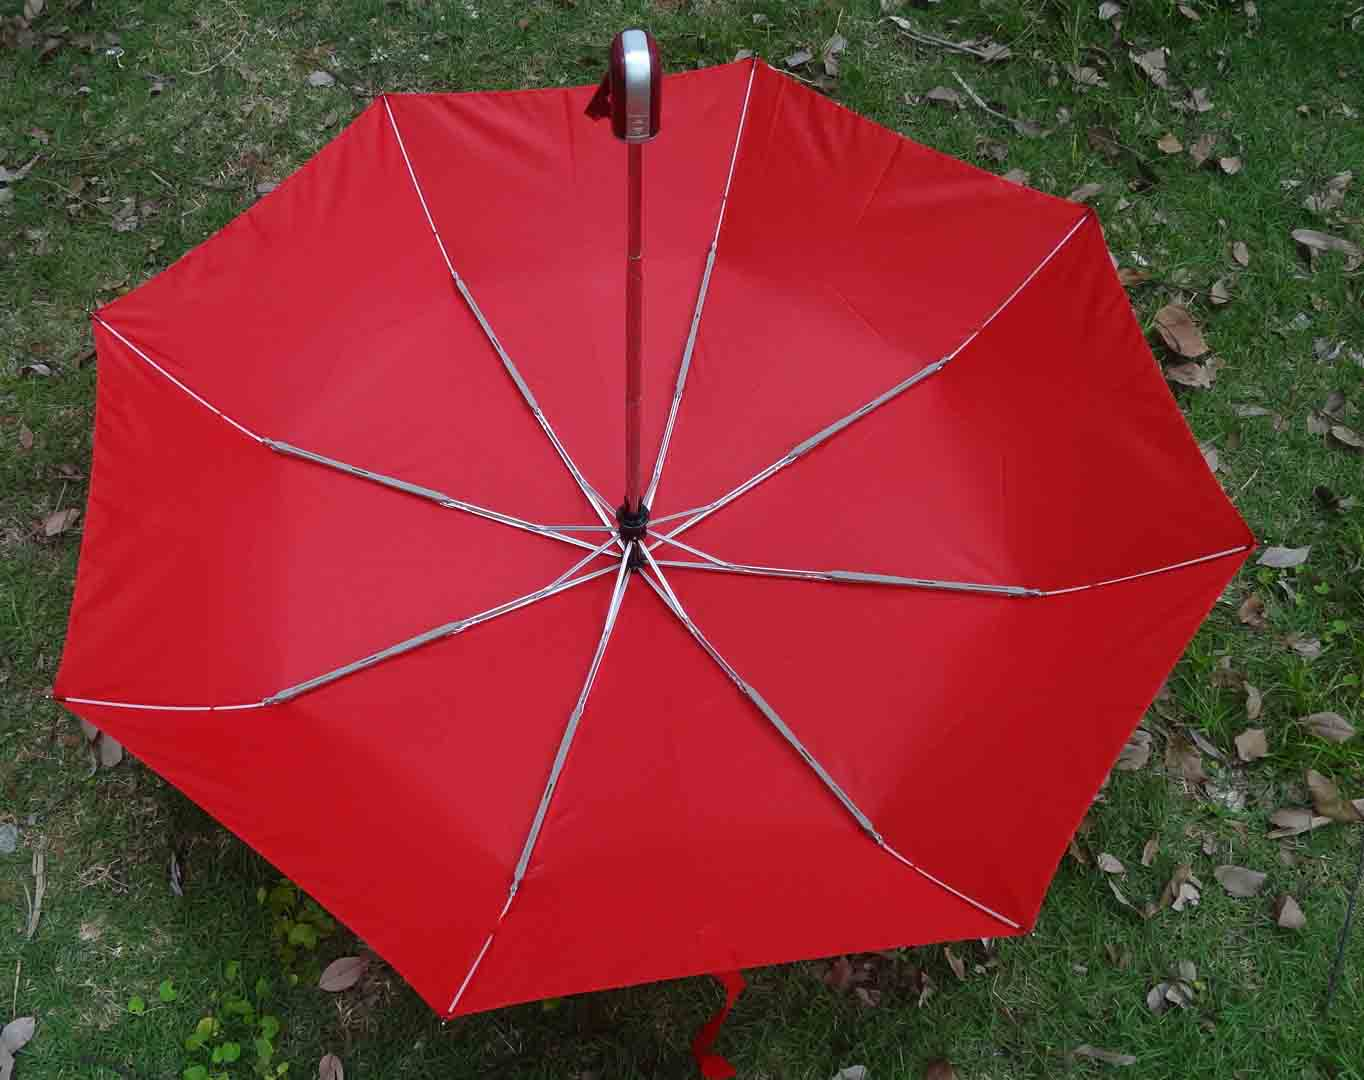 3-section umbrella-F3U027b